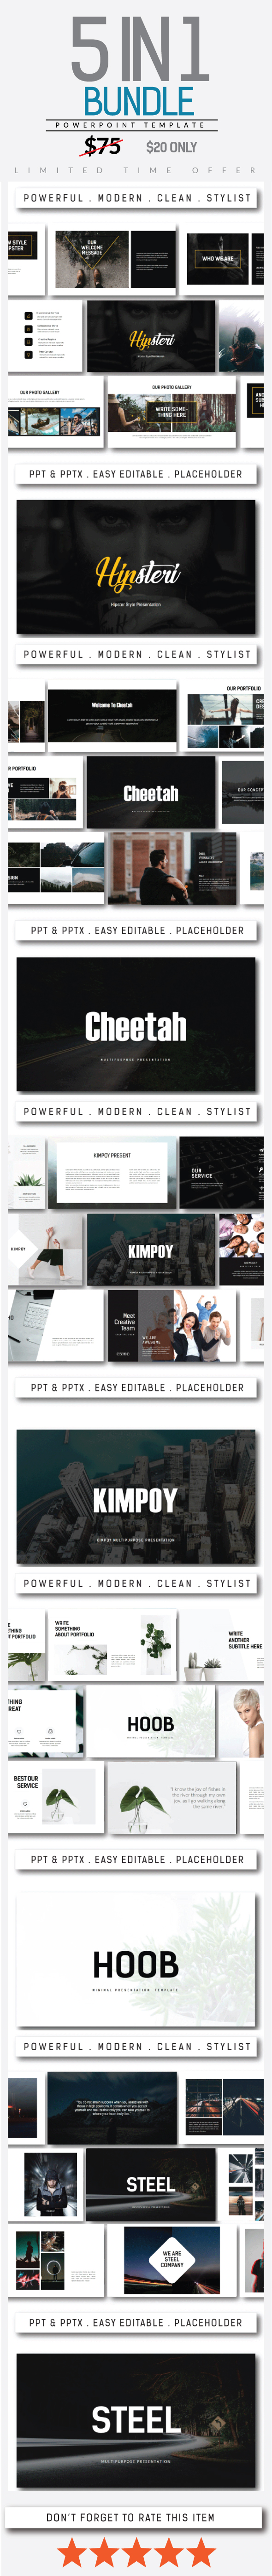 Bundle 5 in 1 Powerpoint Template - PowerPoint Templates Presentation Templates